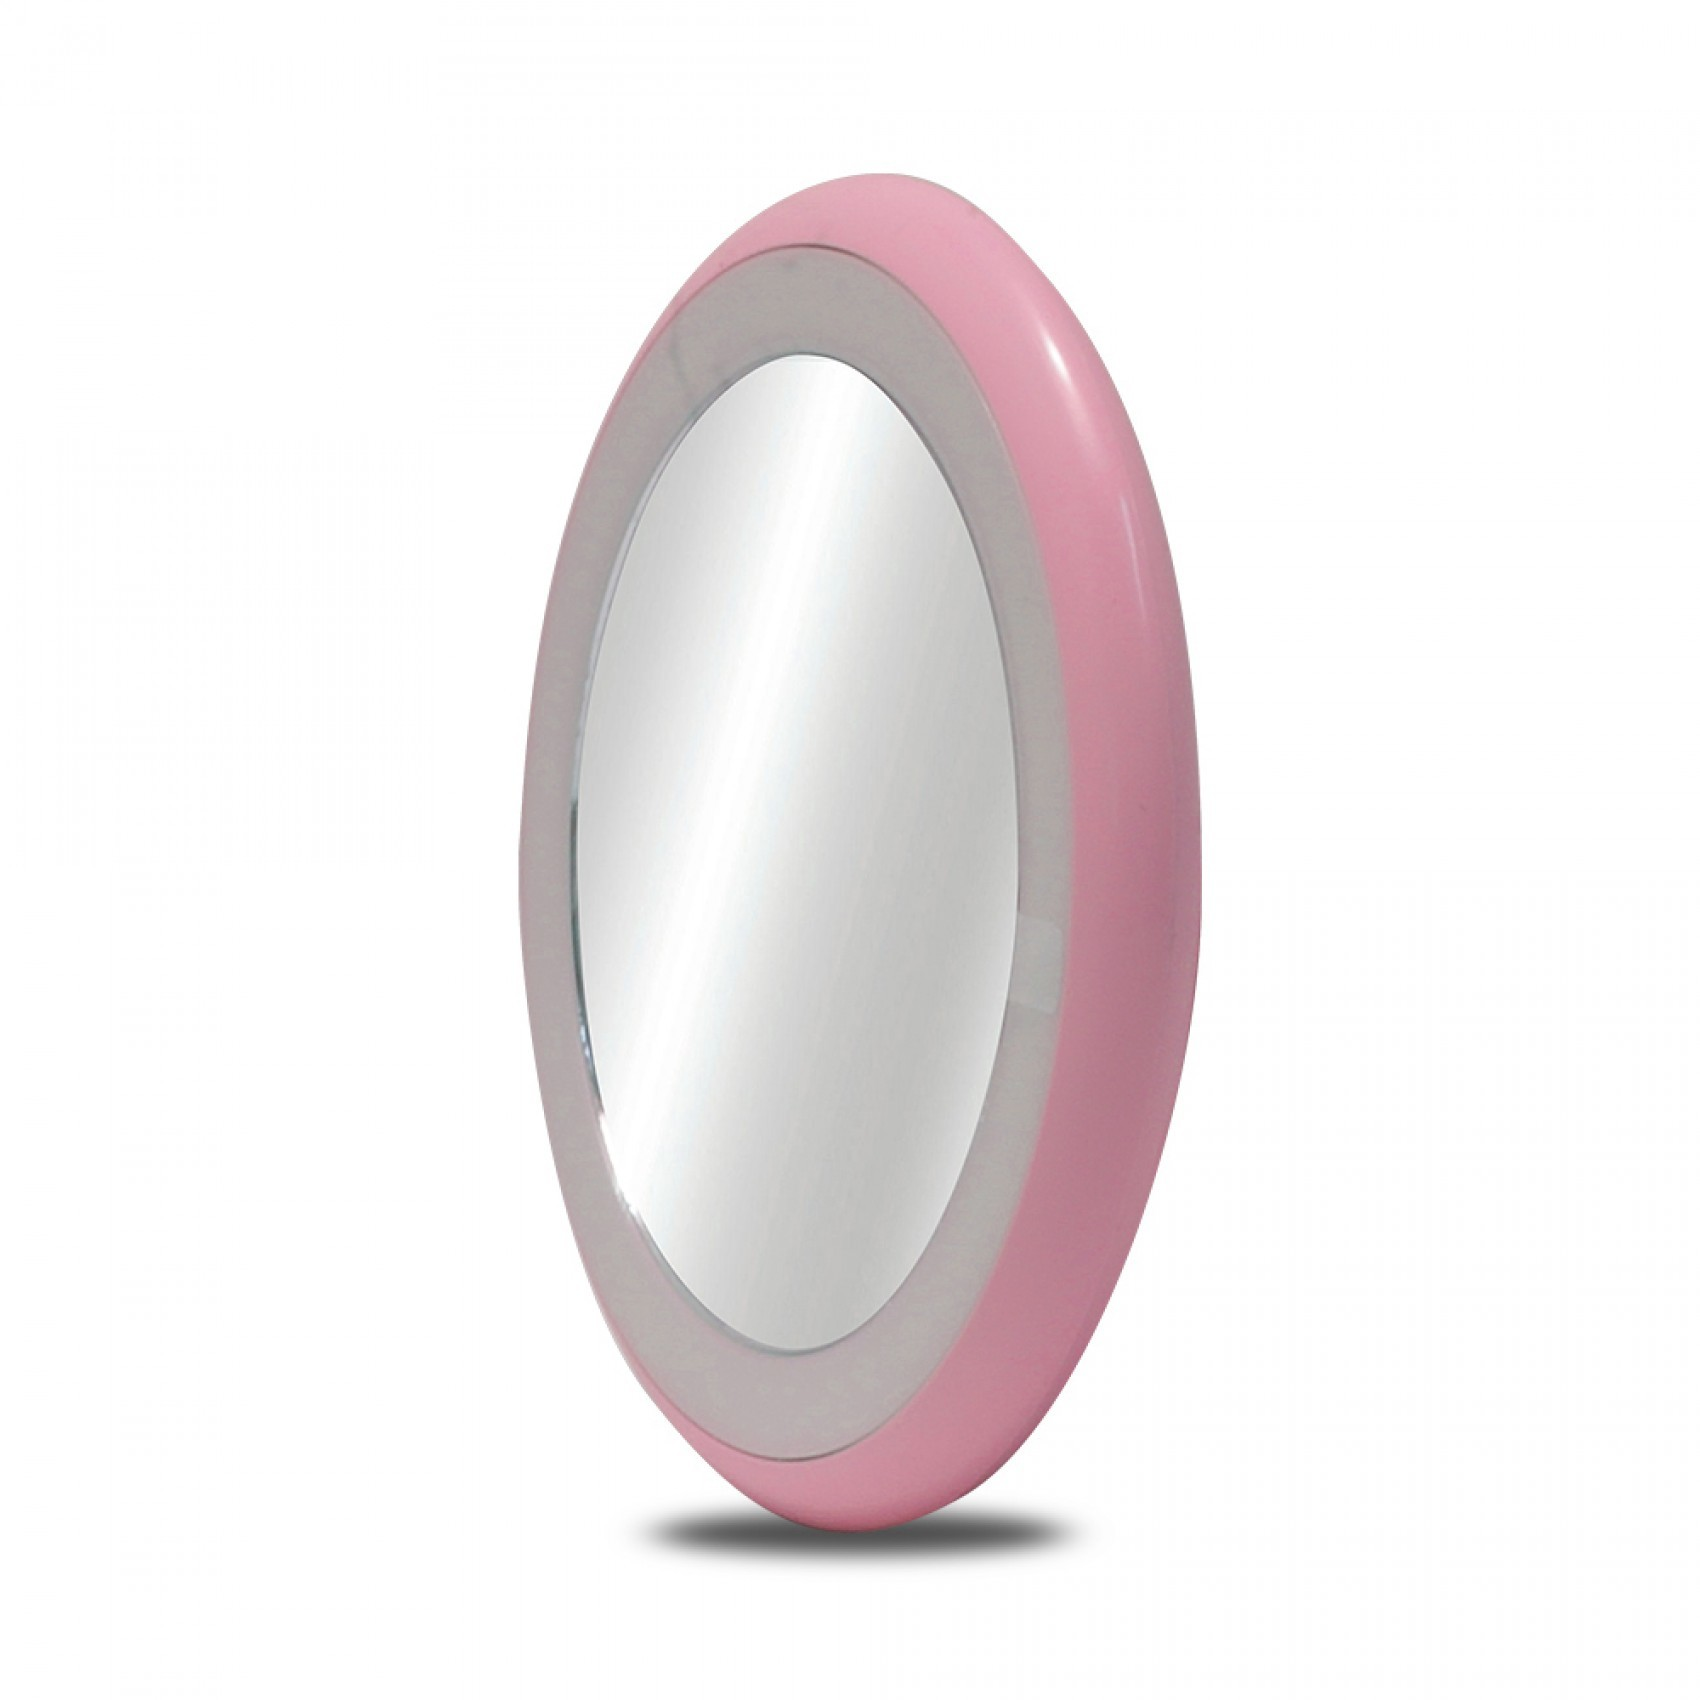 Portable Led Makeup Vanity Mirror With Lamp - Pink